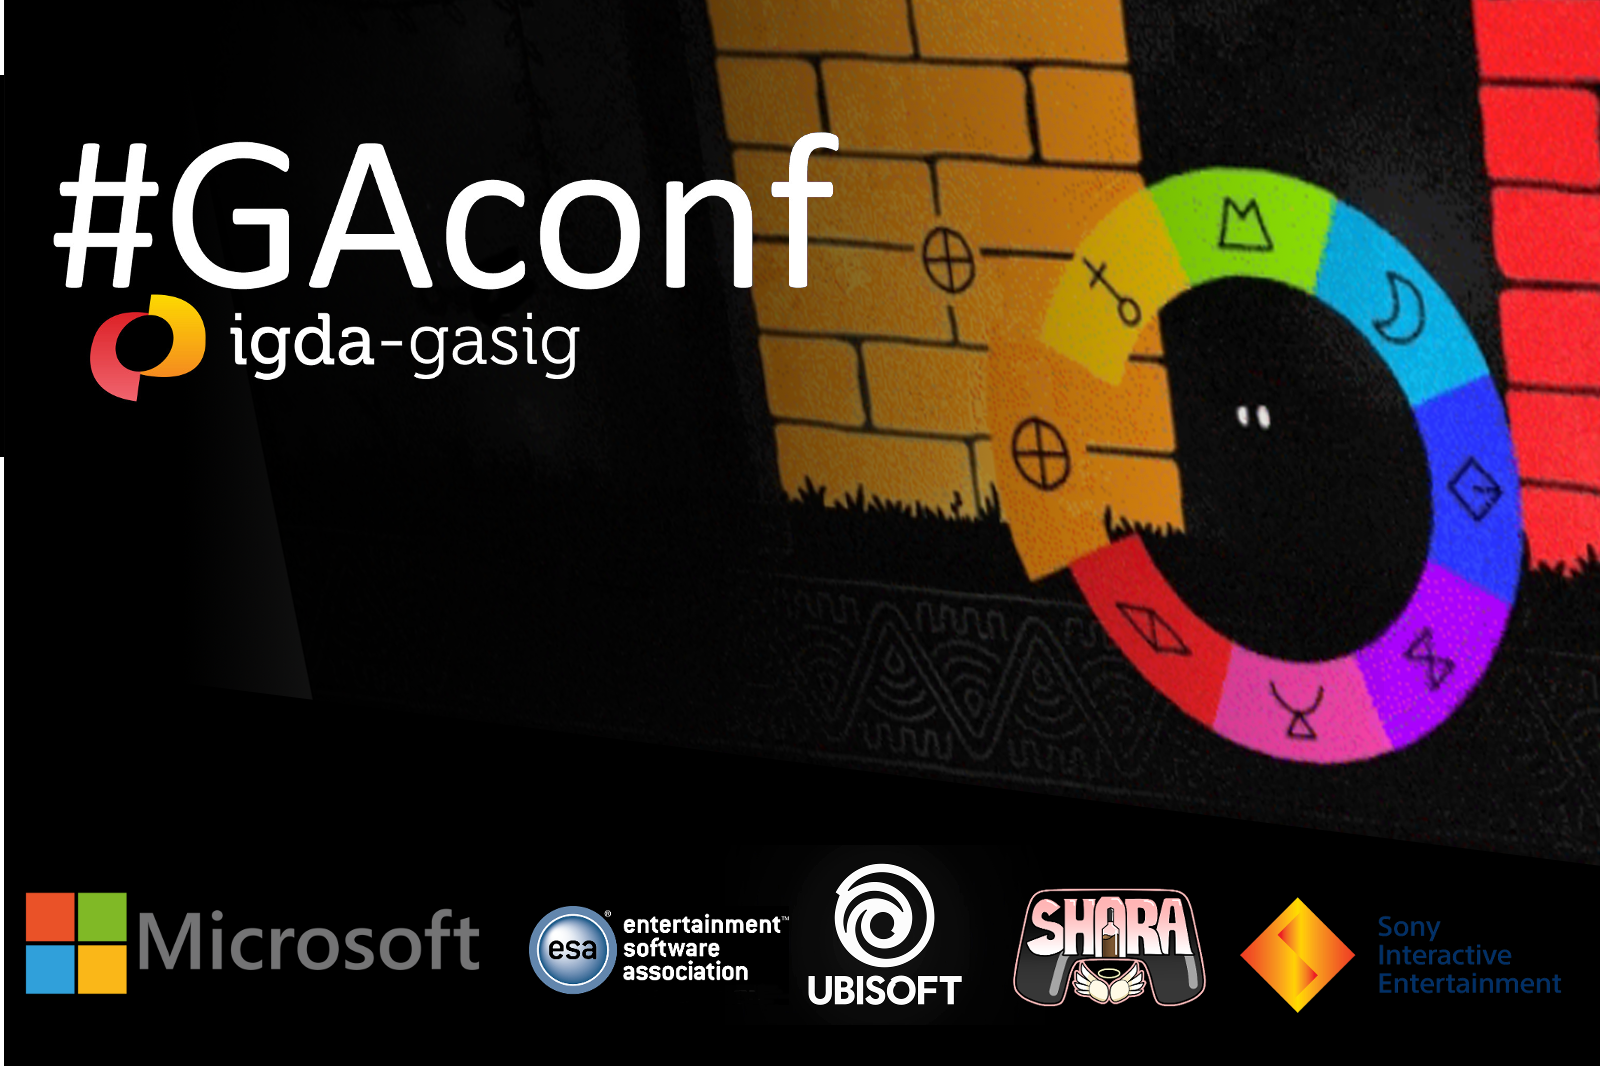 GAconf banner image with sponsors and video game background